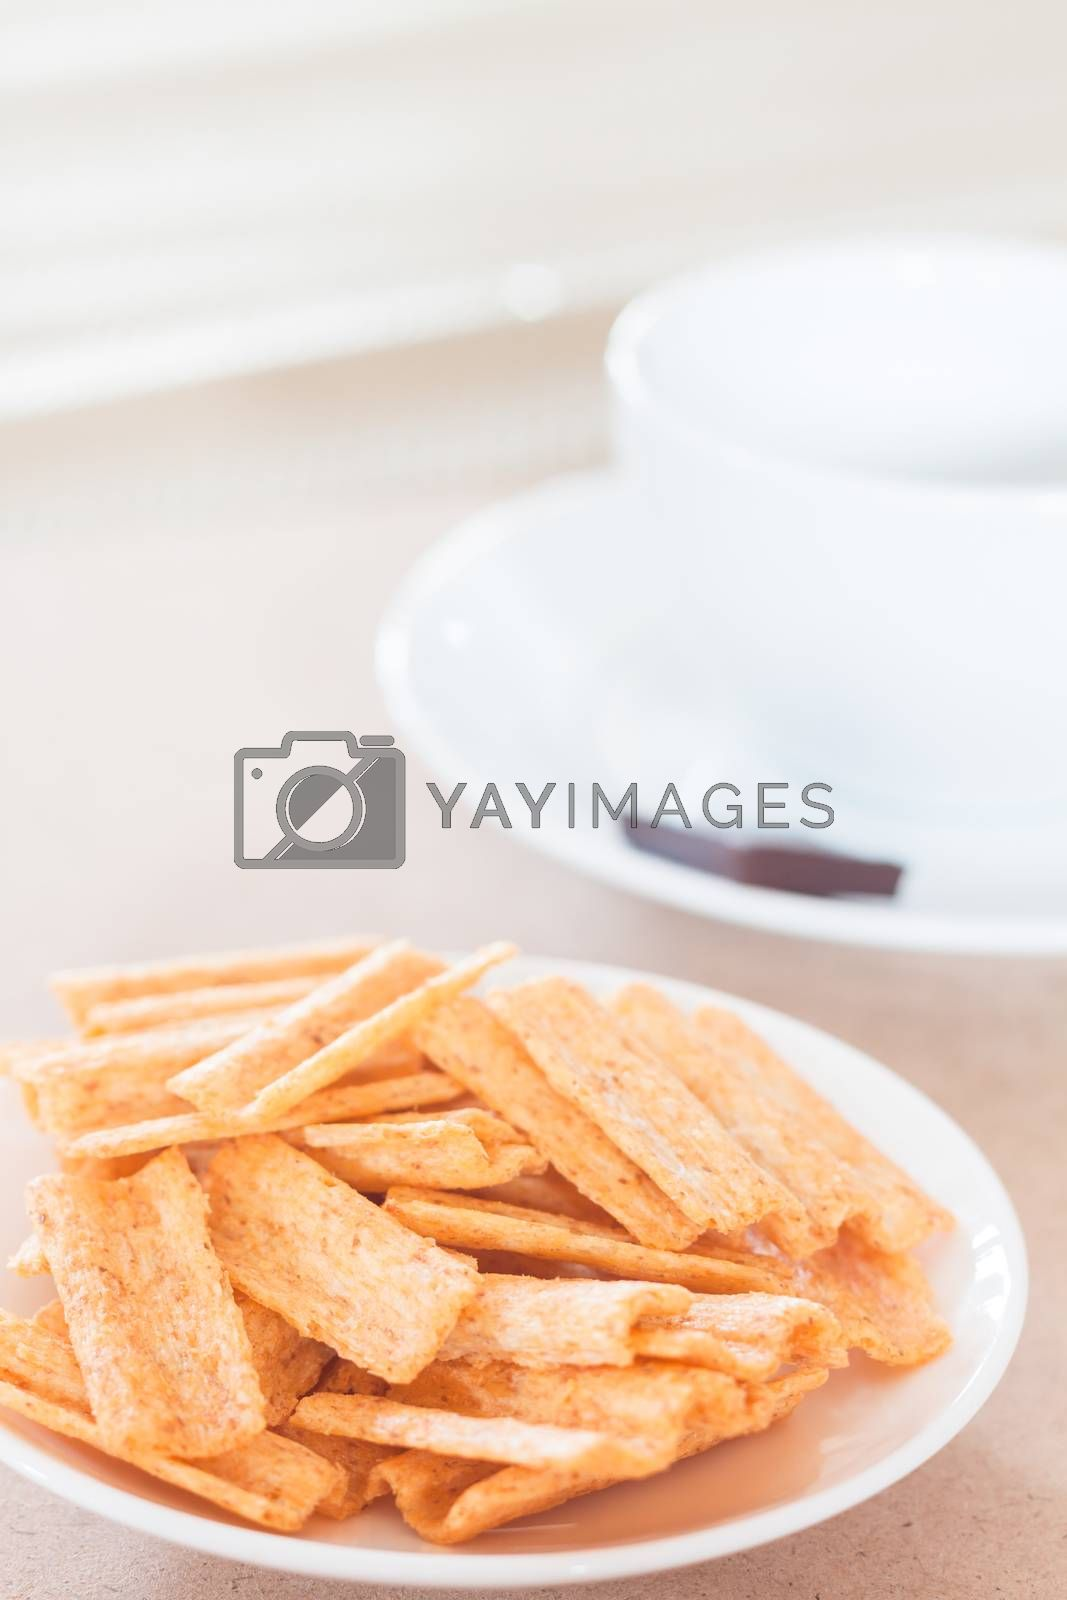 Snack on white plate with coffee cup, stock photo